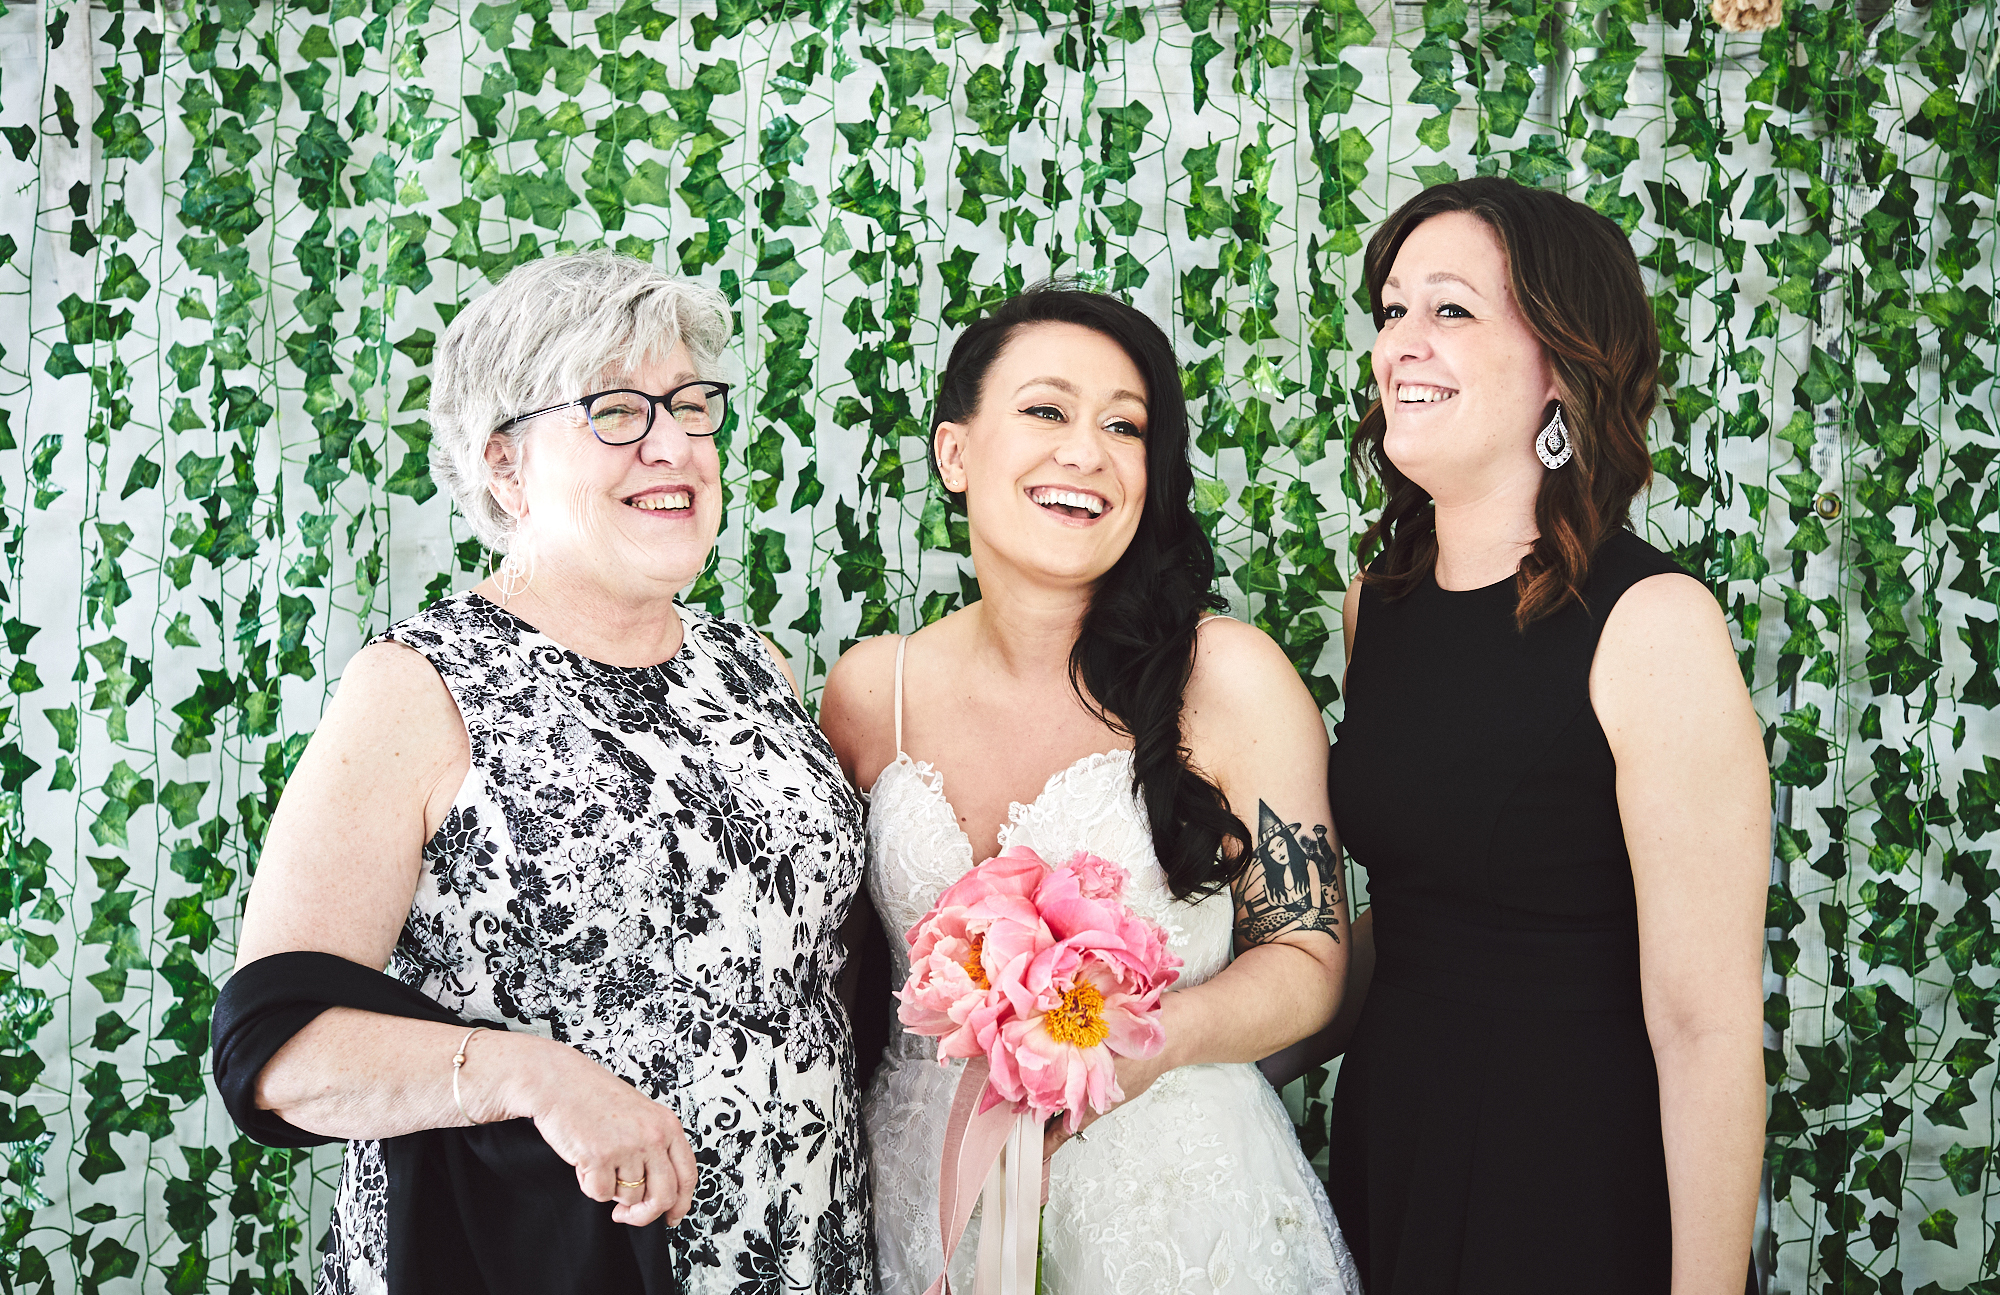 190518_SpringThreesBreweryWedding_By_BriJohnsonWeddings_0068.jpg